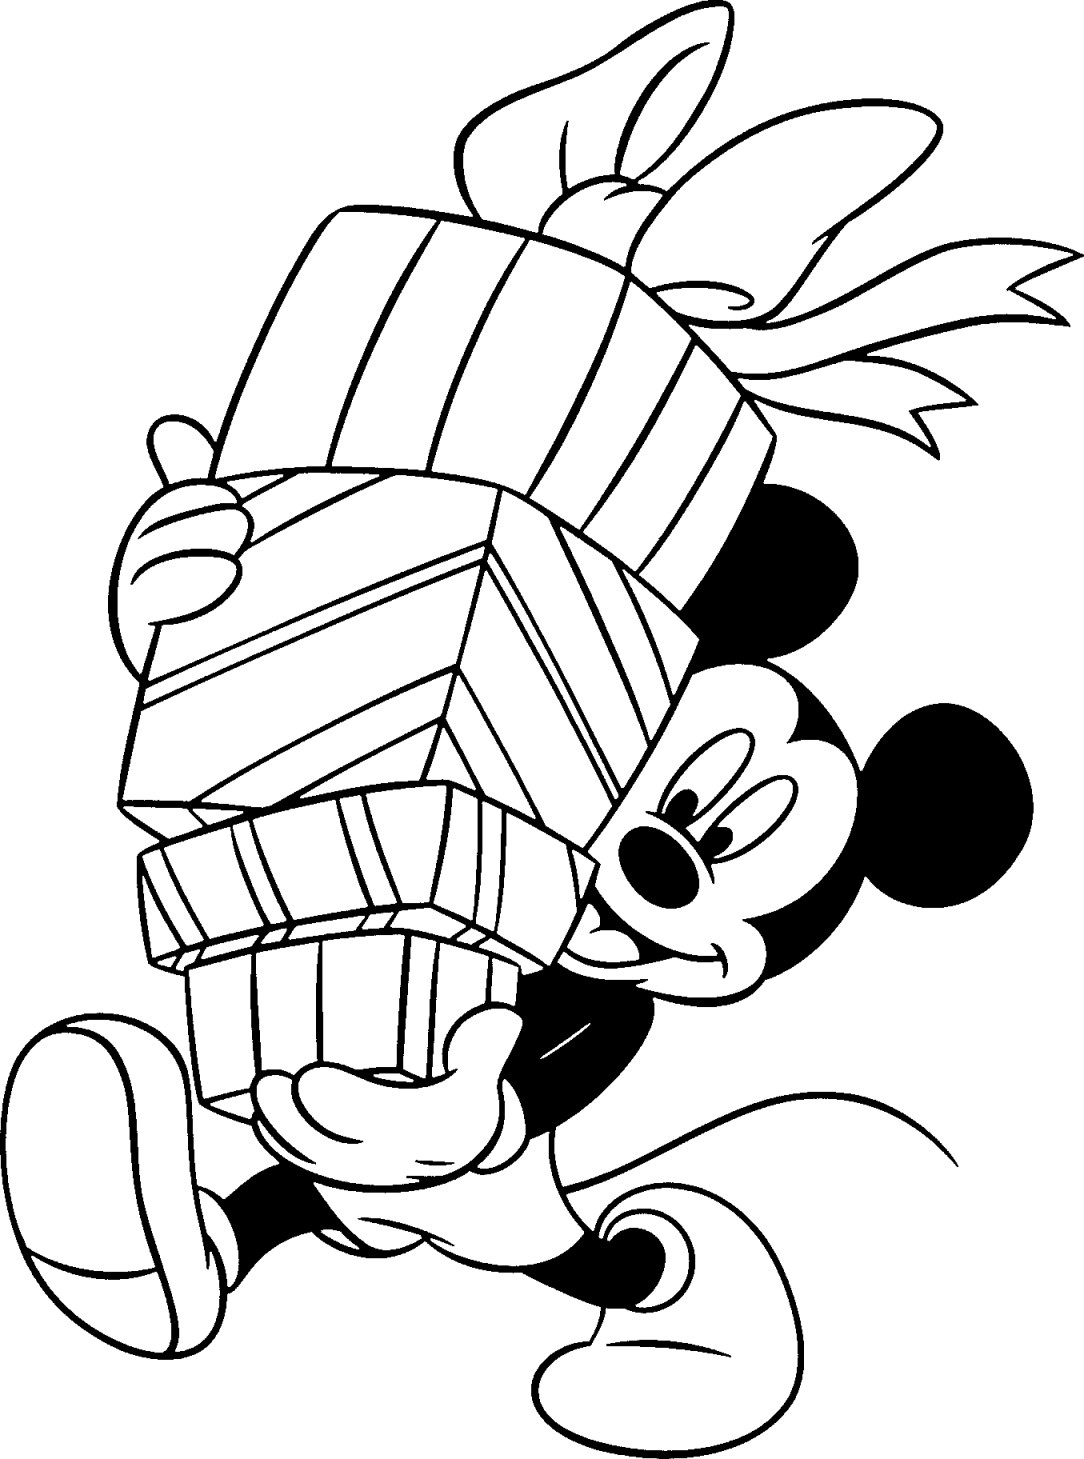 christmas coloring page disney coloring pages coloring pages christmas disney coloring christmas page